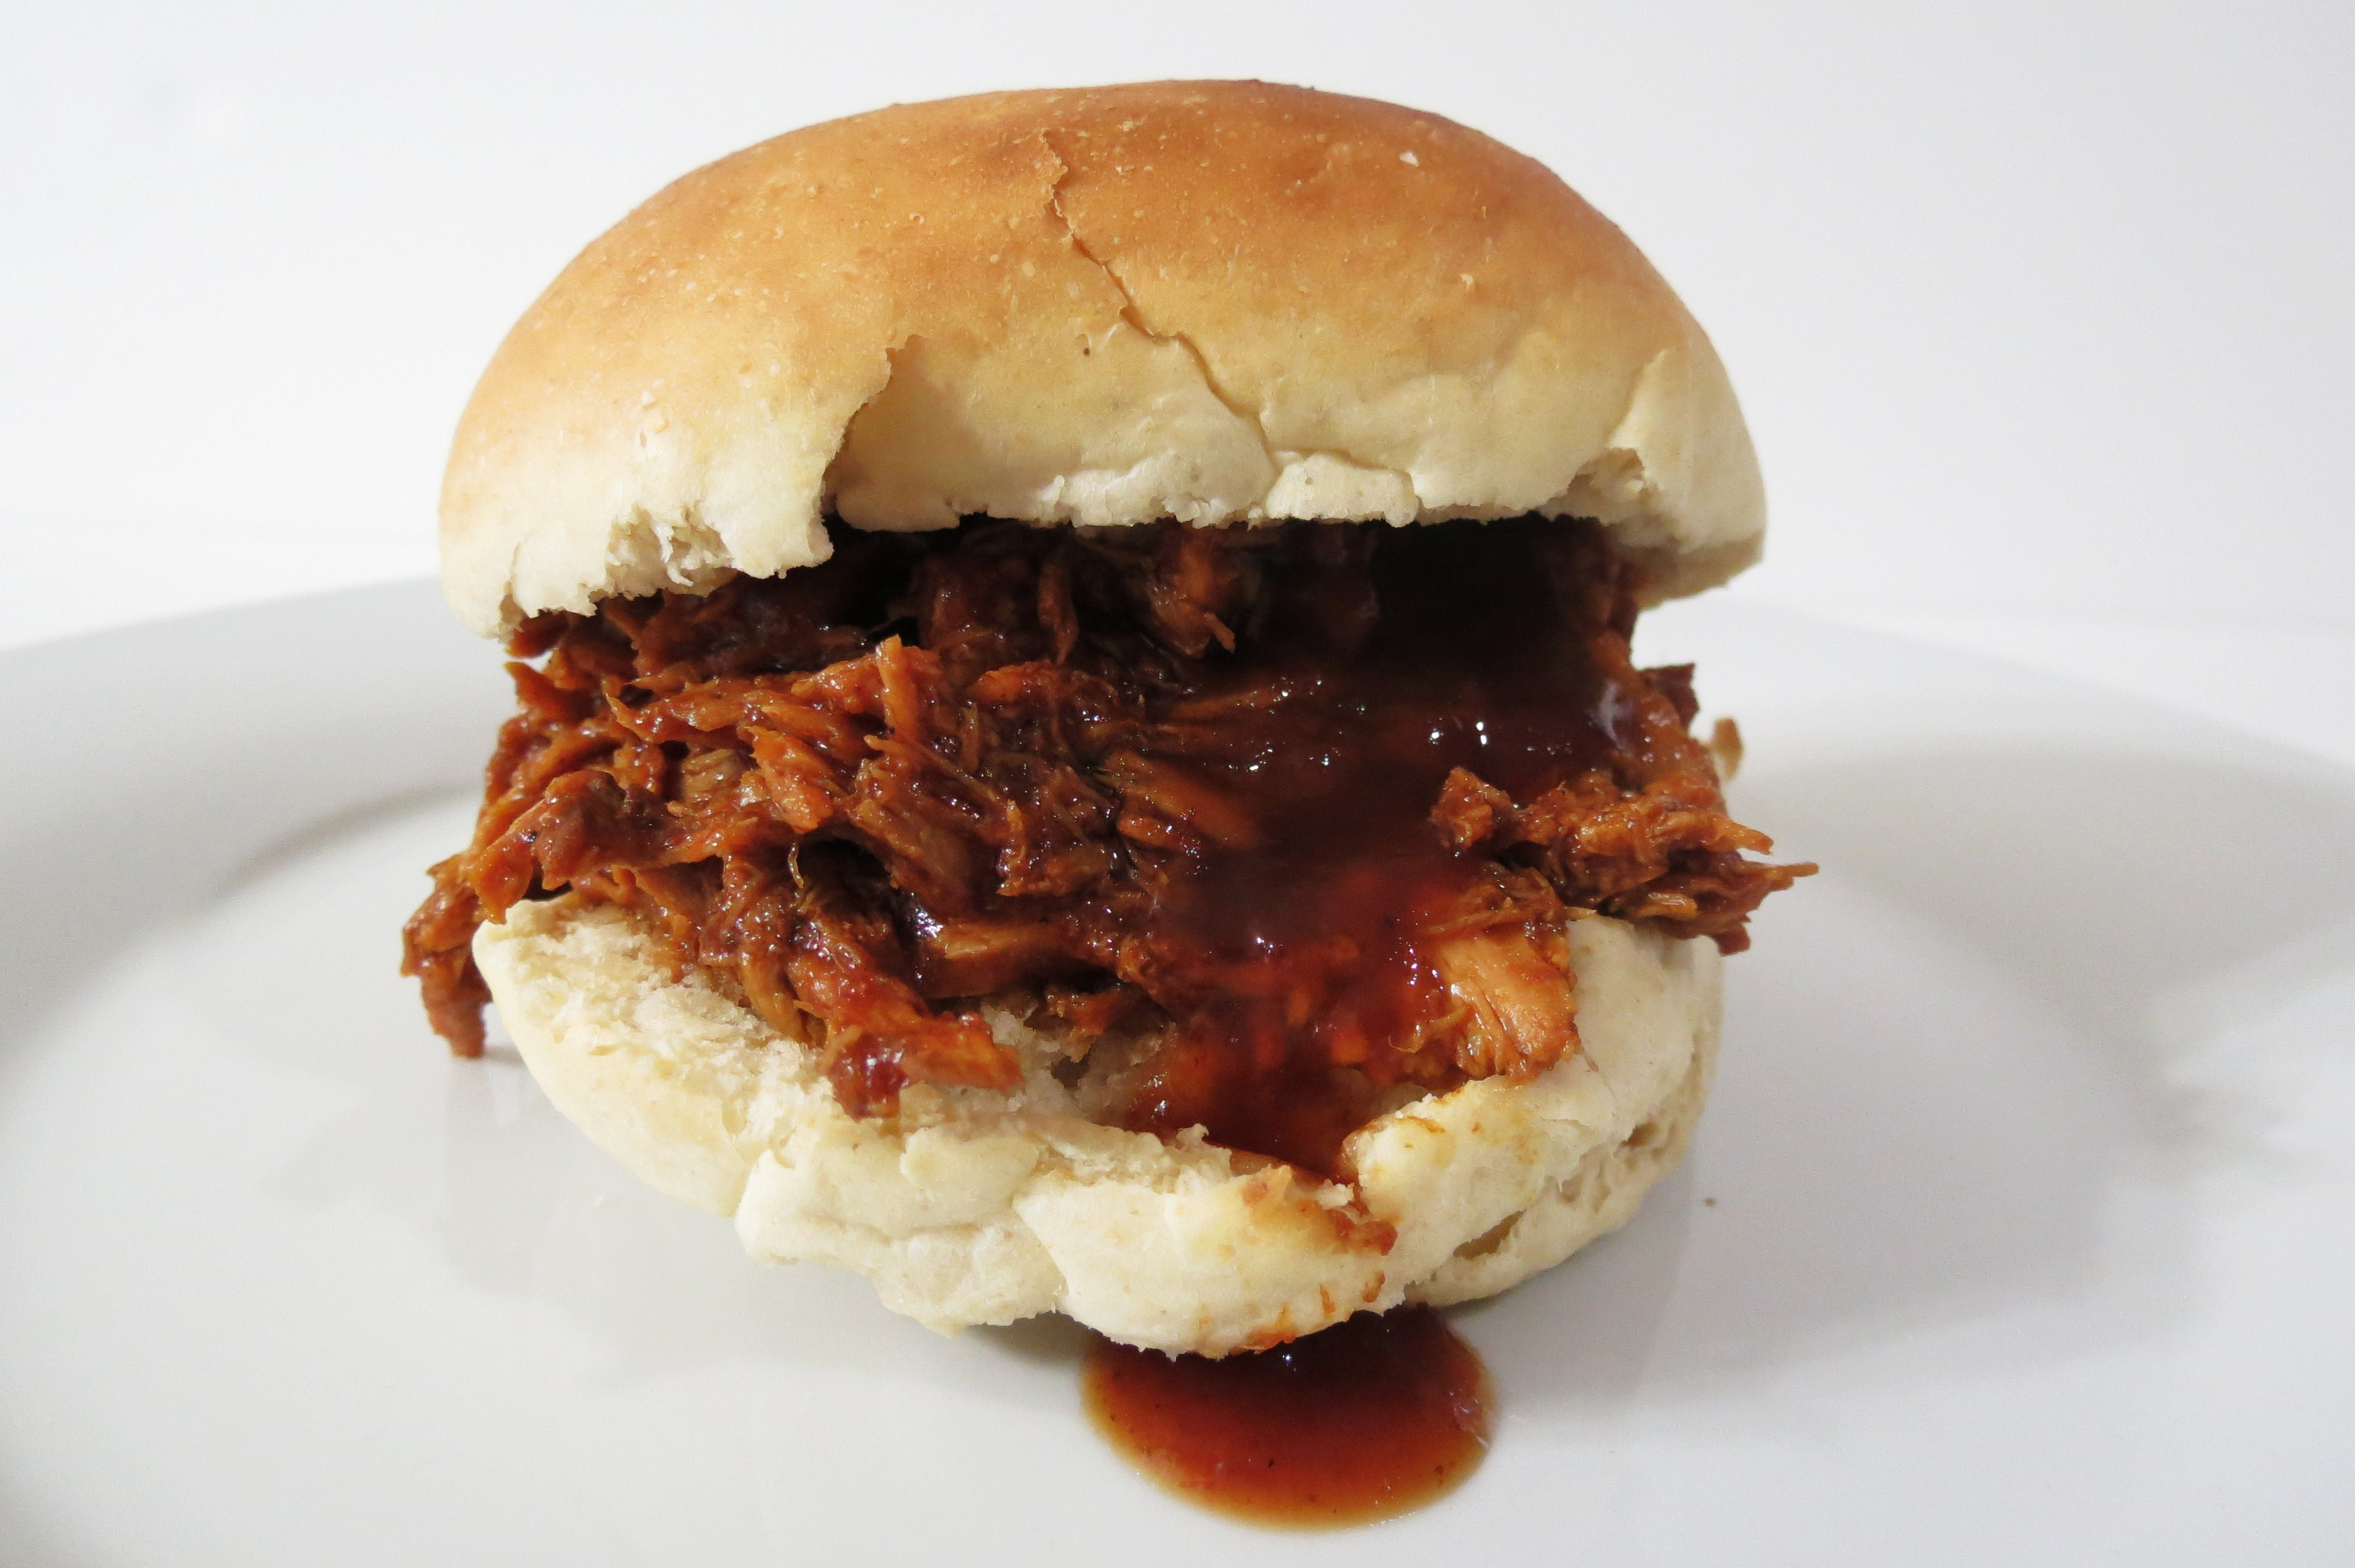 Barbecued Chicken Sandwiches  Shredded Barbecue Chicken and Homemade Rolls